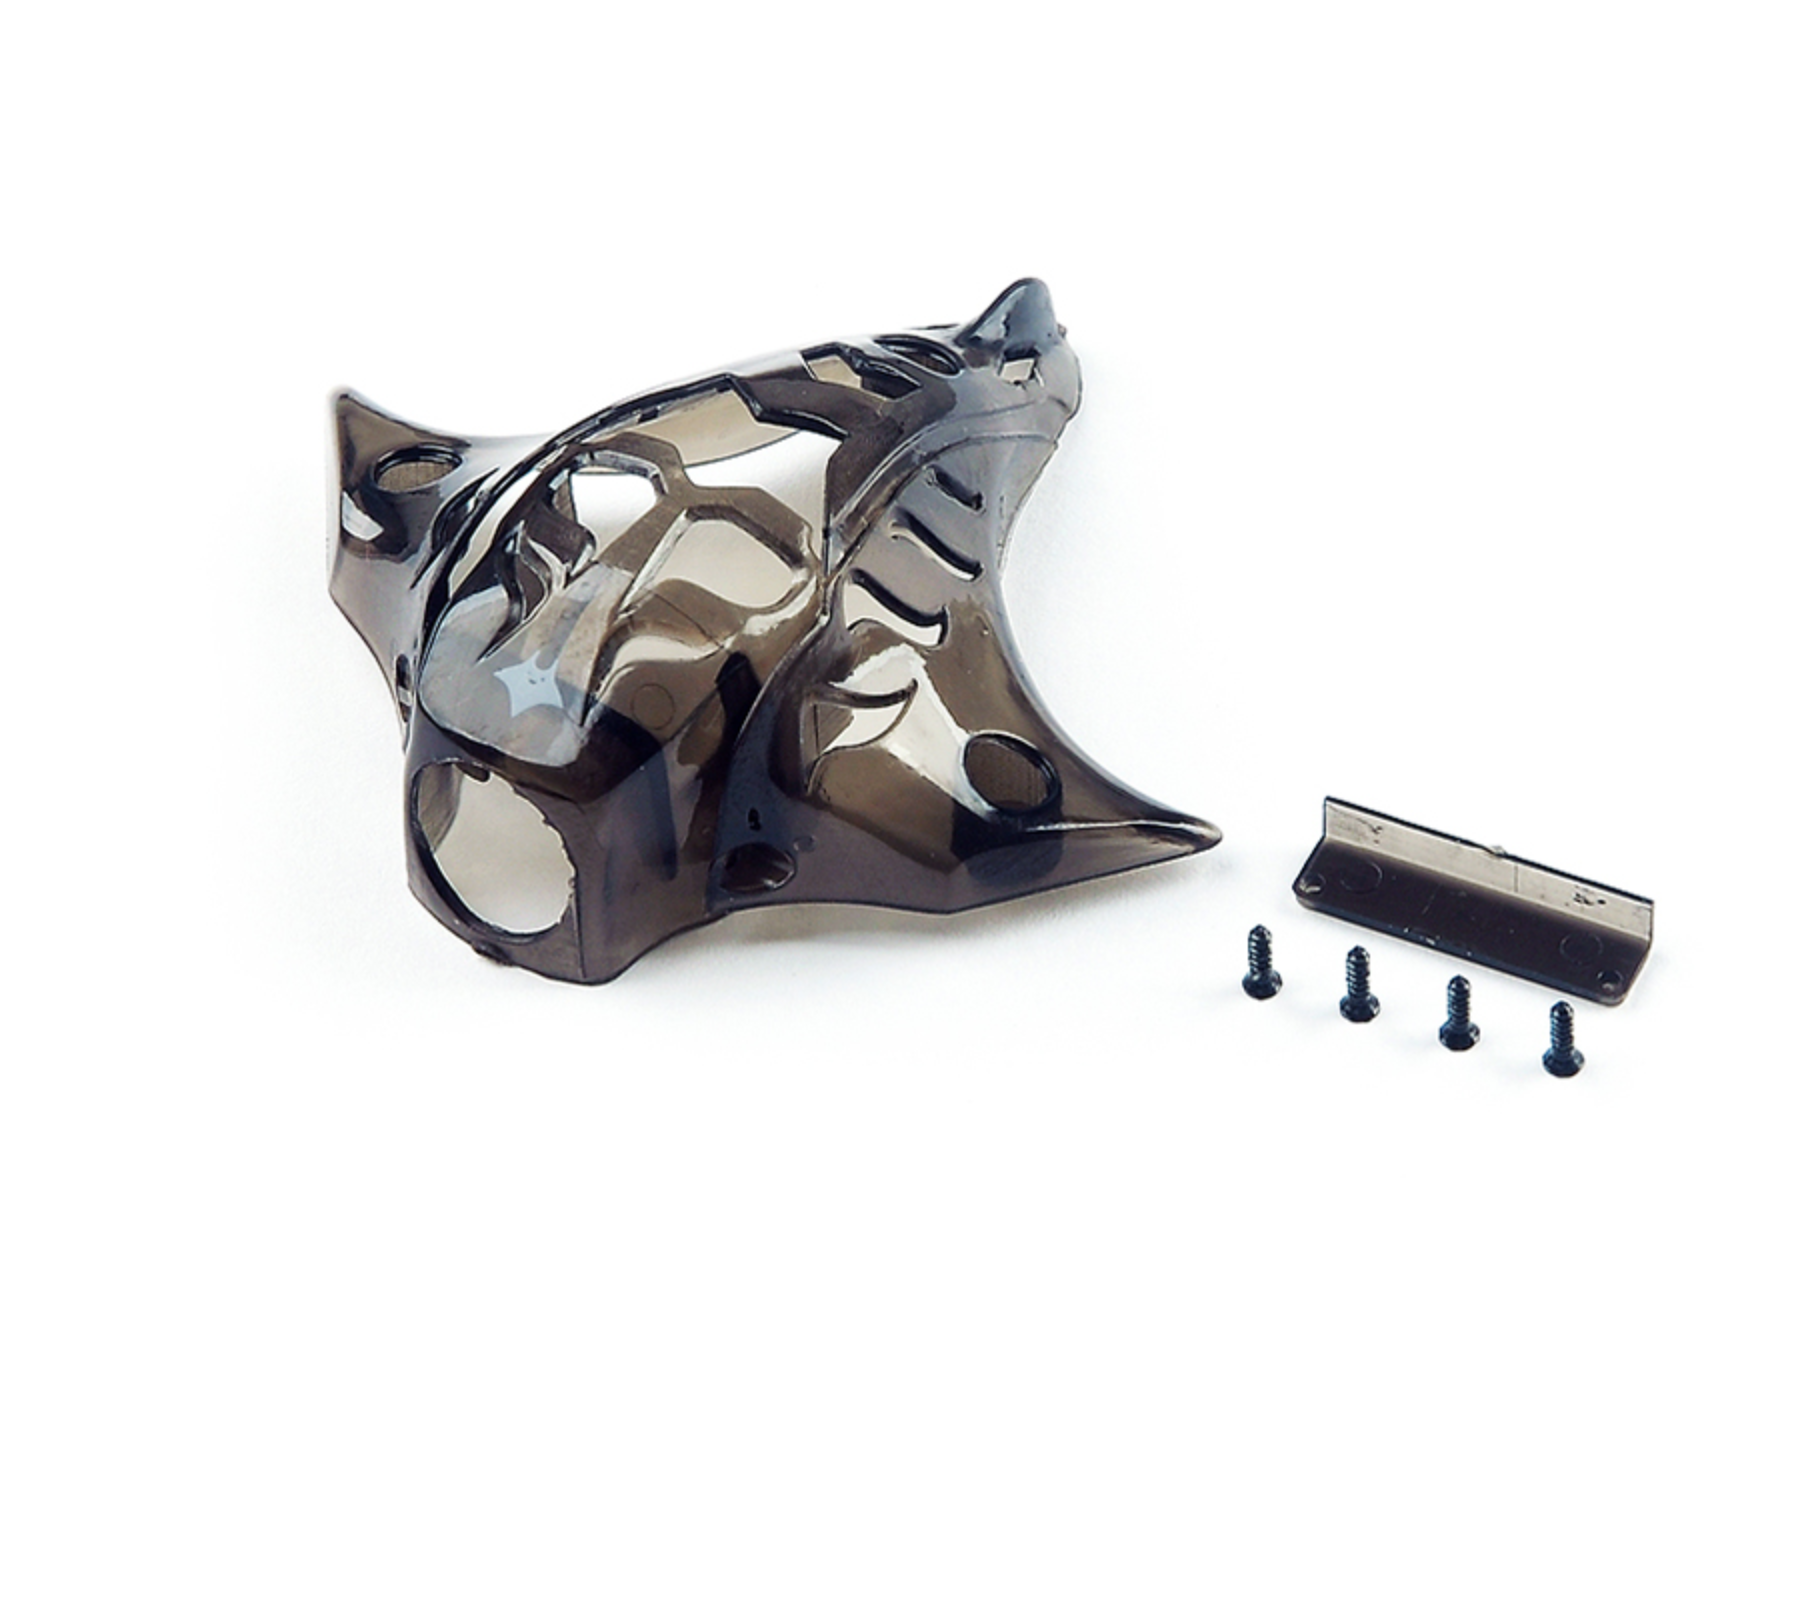 Happymodel Mobula7 Adjustable Camera Canopy